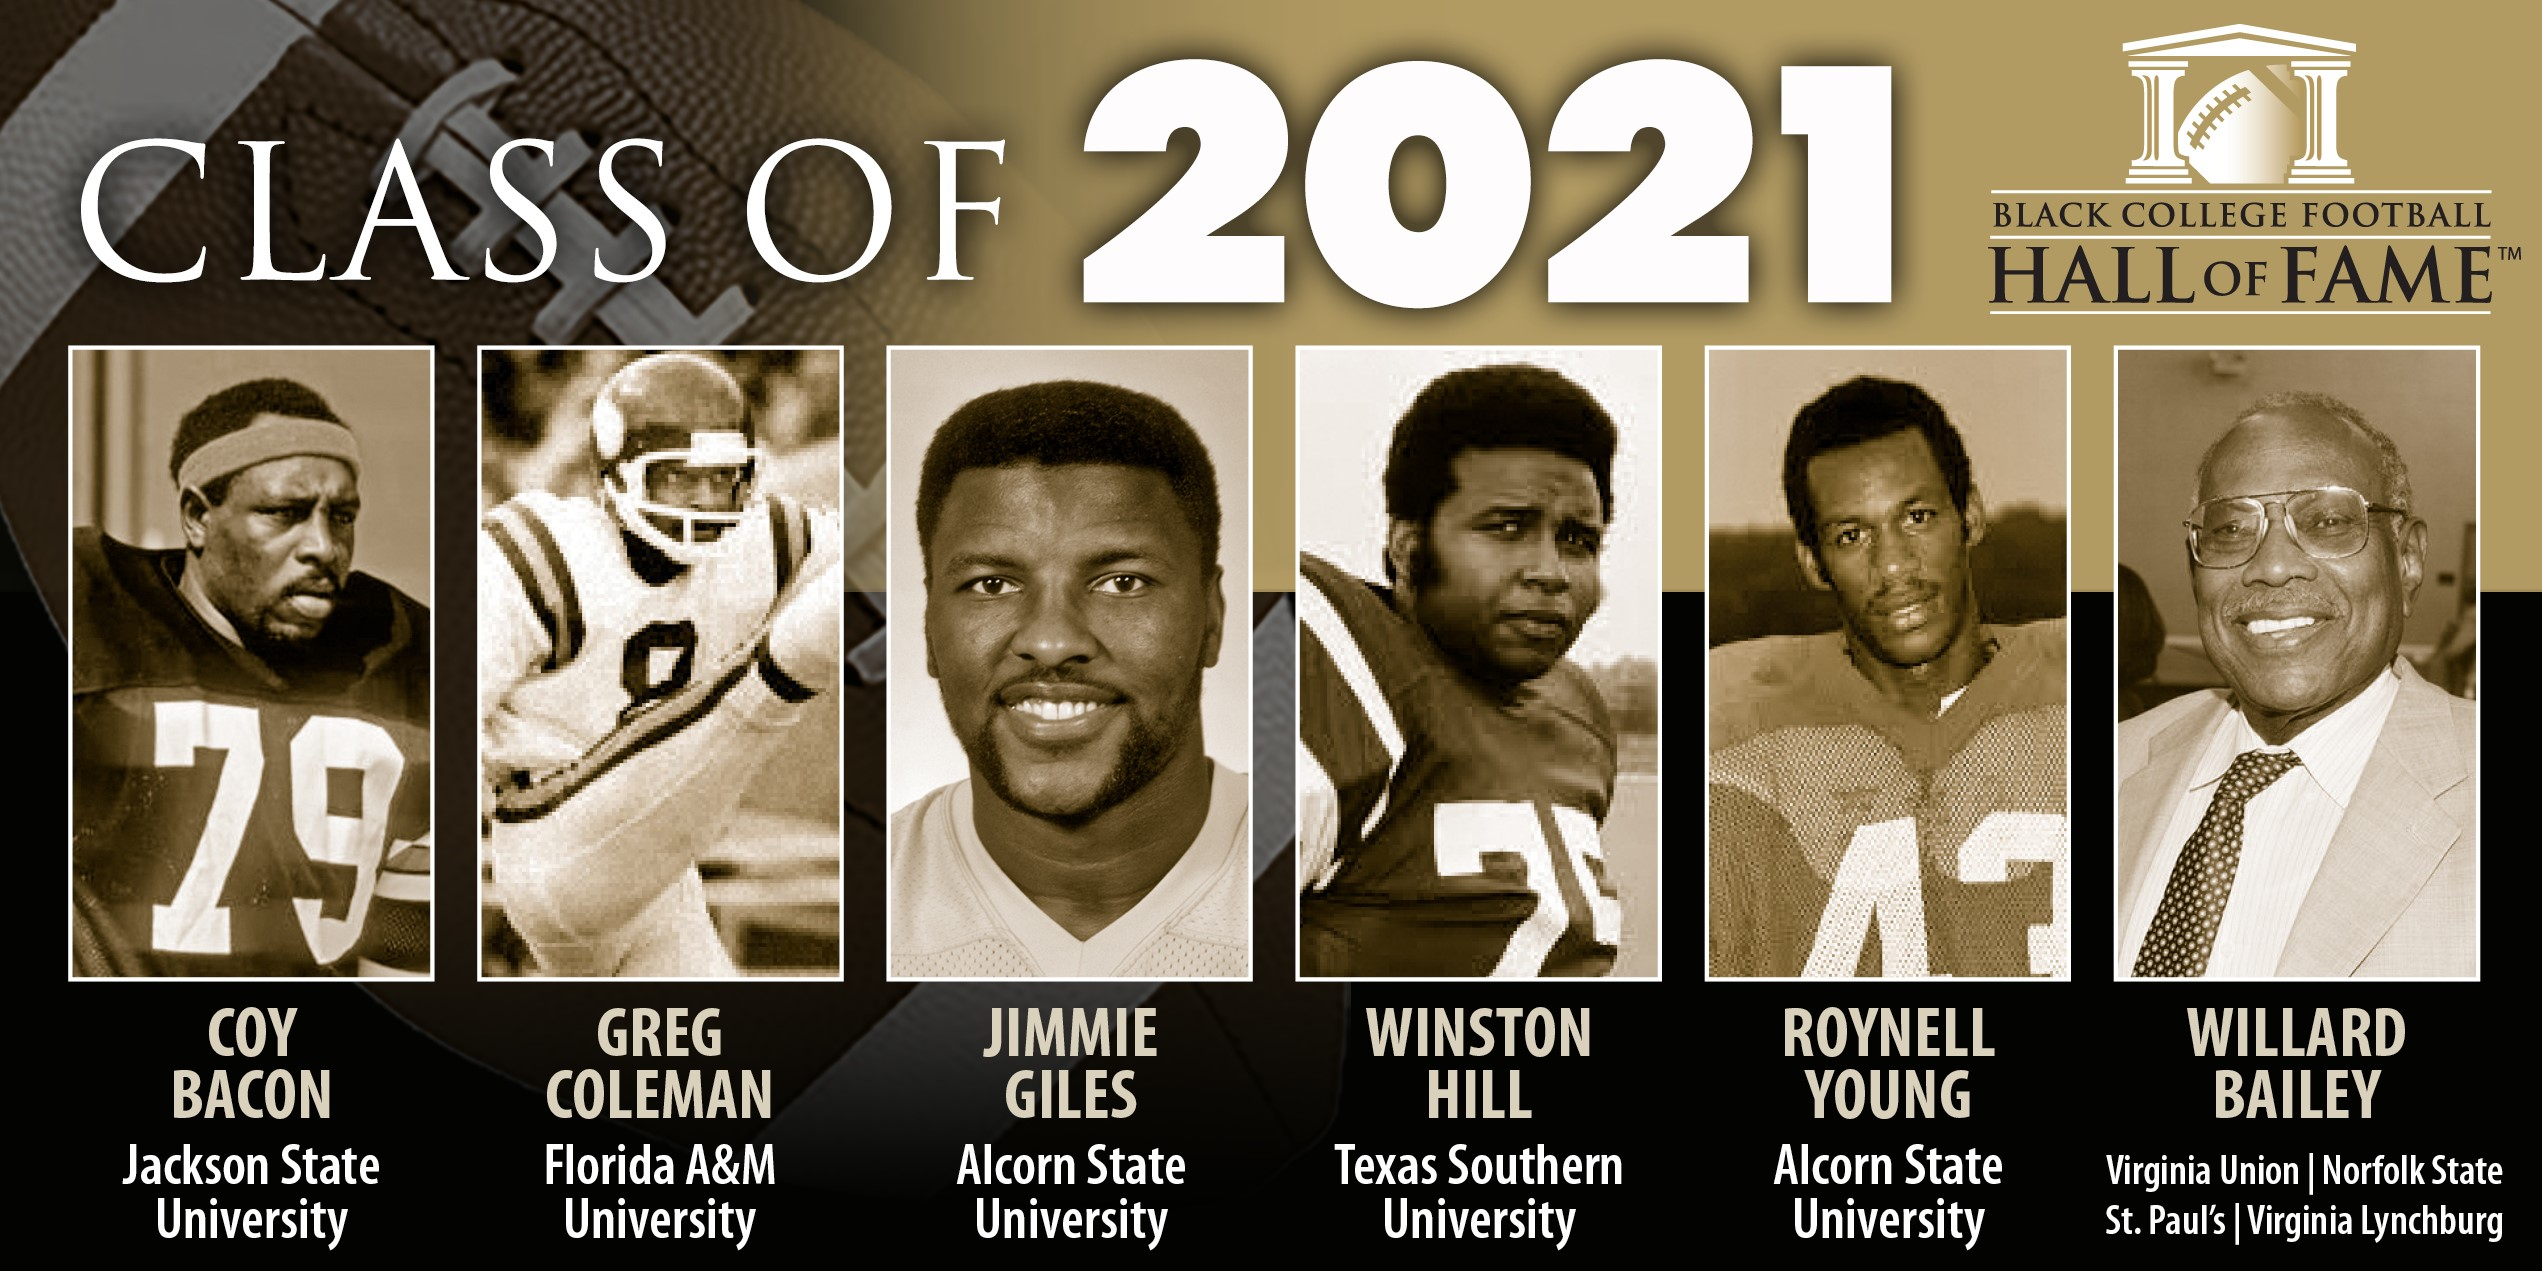 BLACK COLLEGE FOOTBALL HALL OF FAME CLASS OF 2021 ANNOUNCED